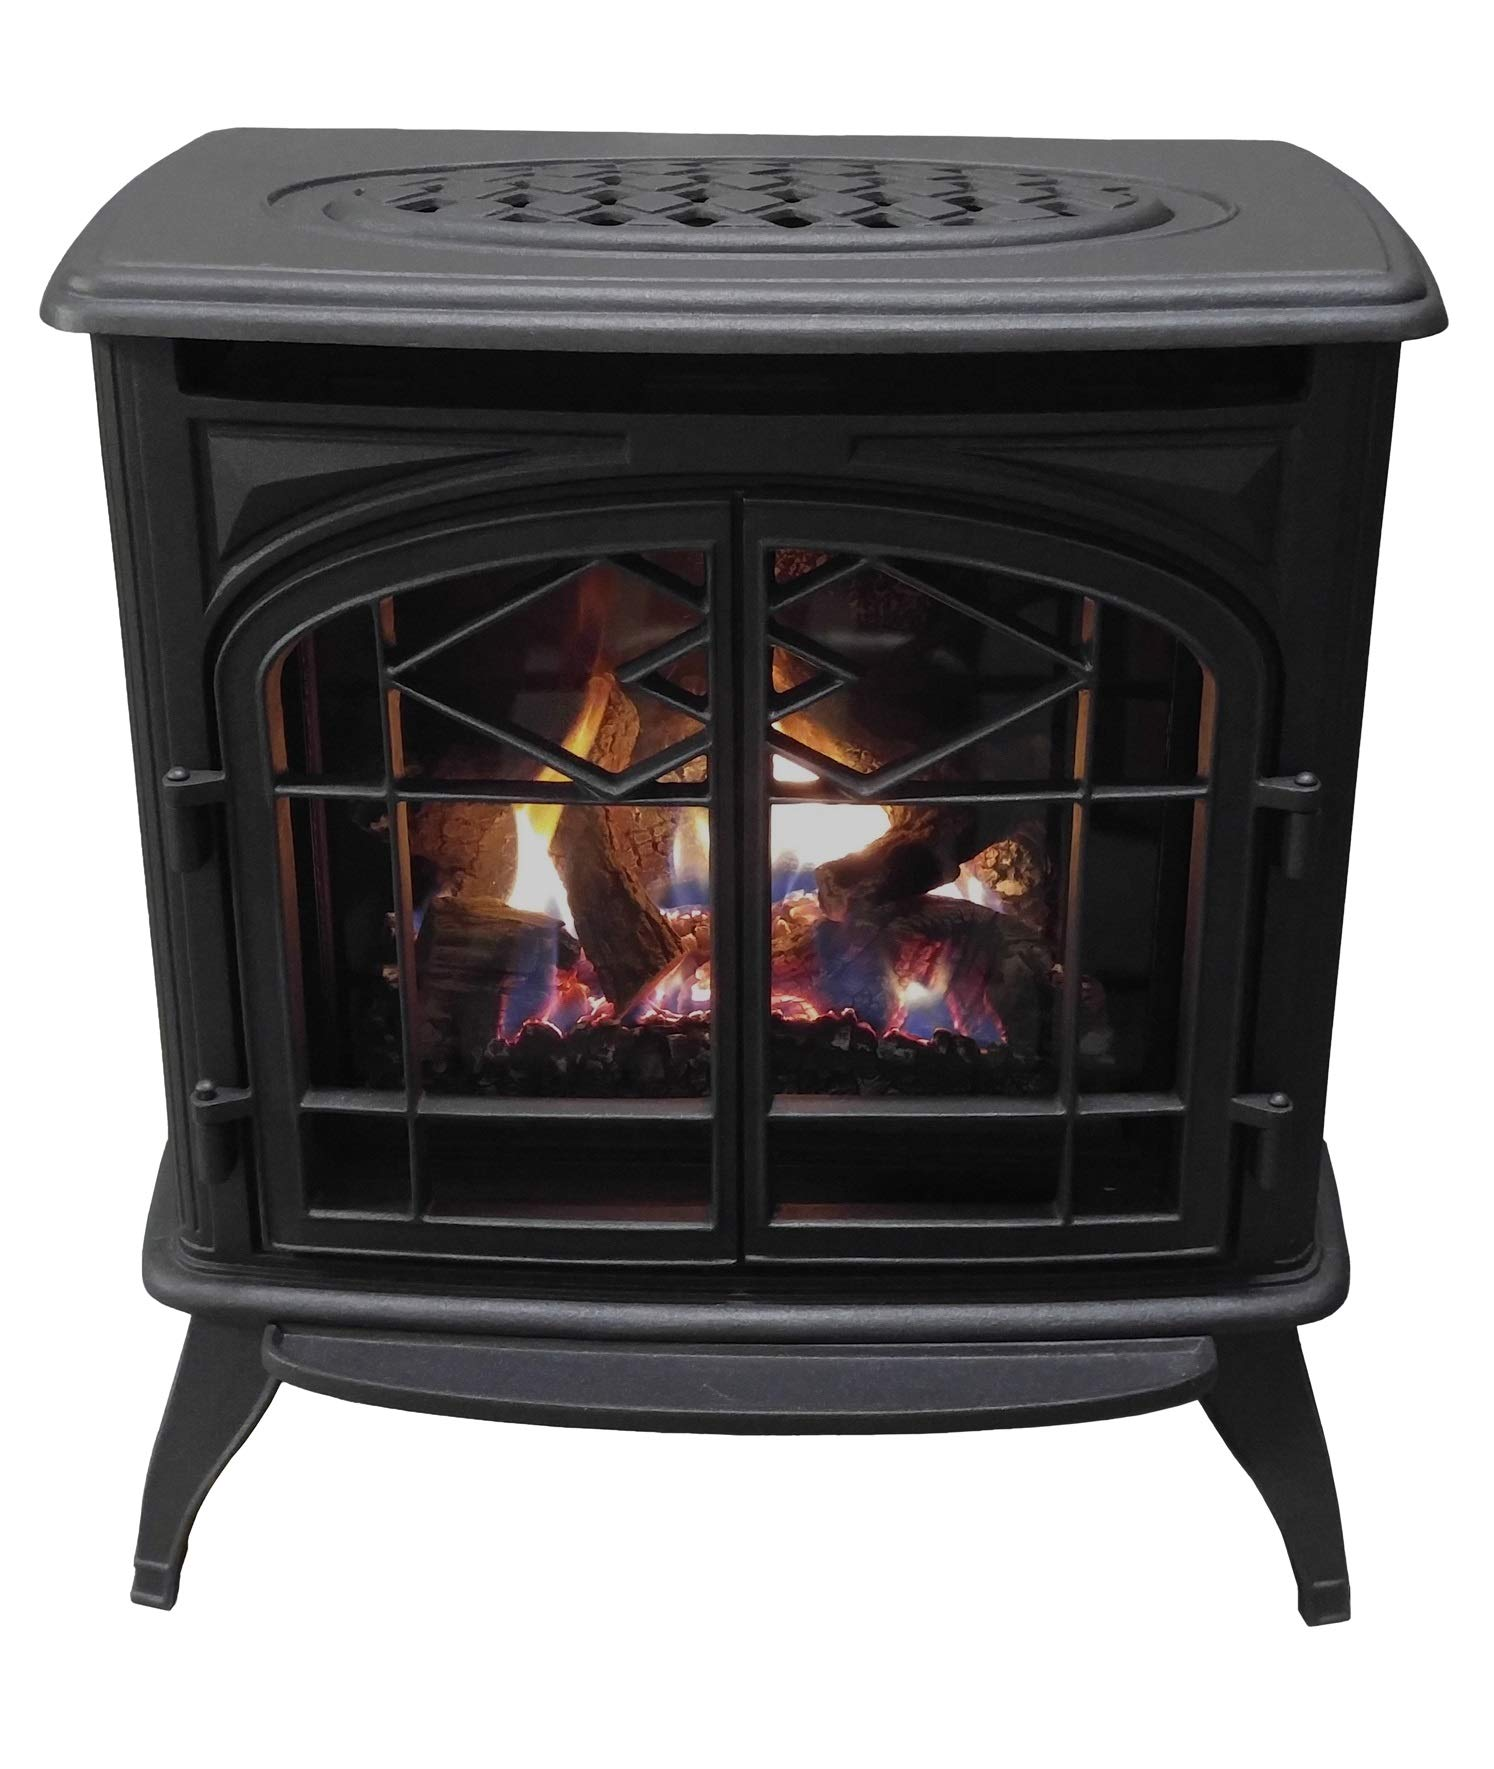 Thelin Echo Direct Vent (NG) Natural Gas or (LP) Propane Heater - Cast Iron Painted in Metallic Black by Thelin Echo DV Gas